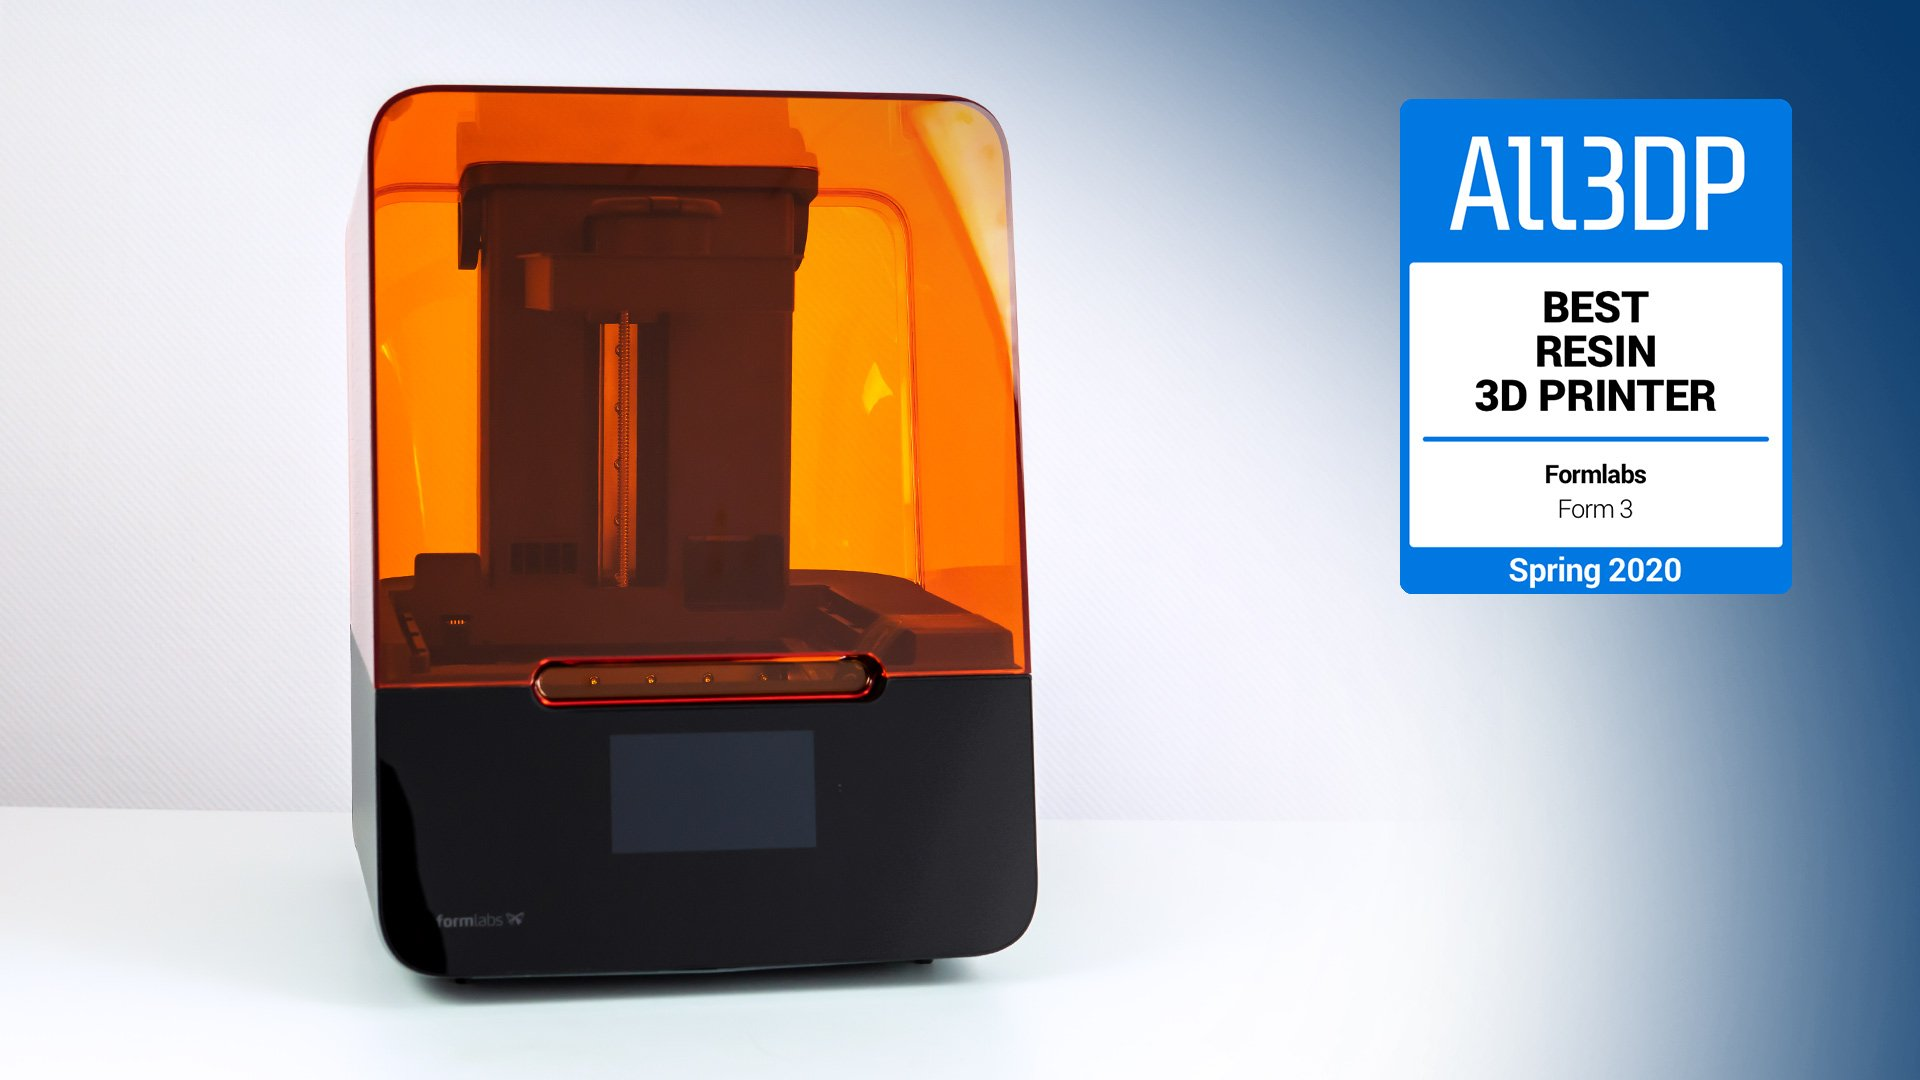 Formlabs Form 3 Review: Best Resin 3D Printer 2020 | All3DP Pro